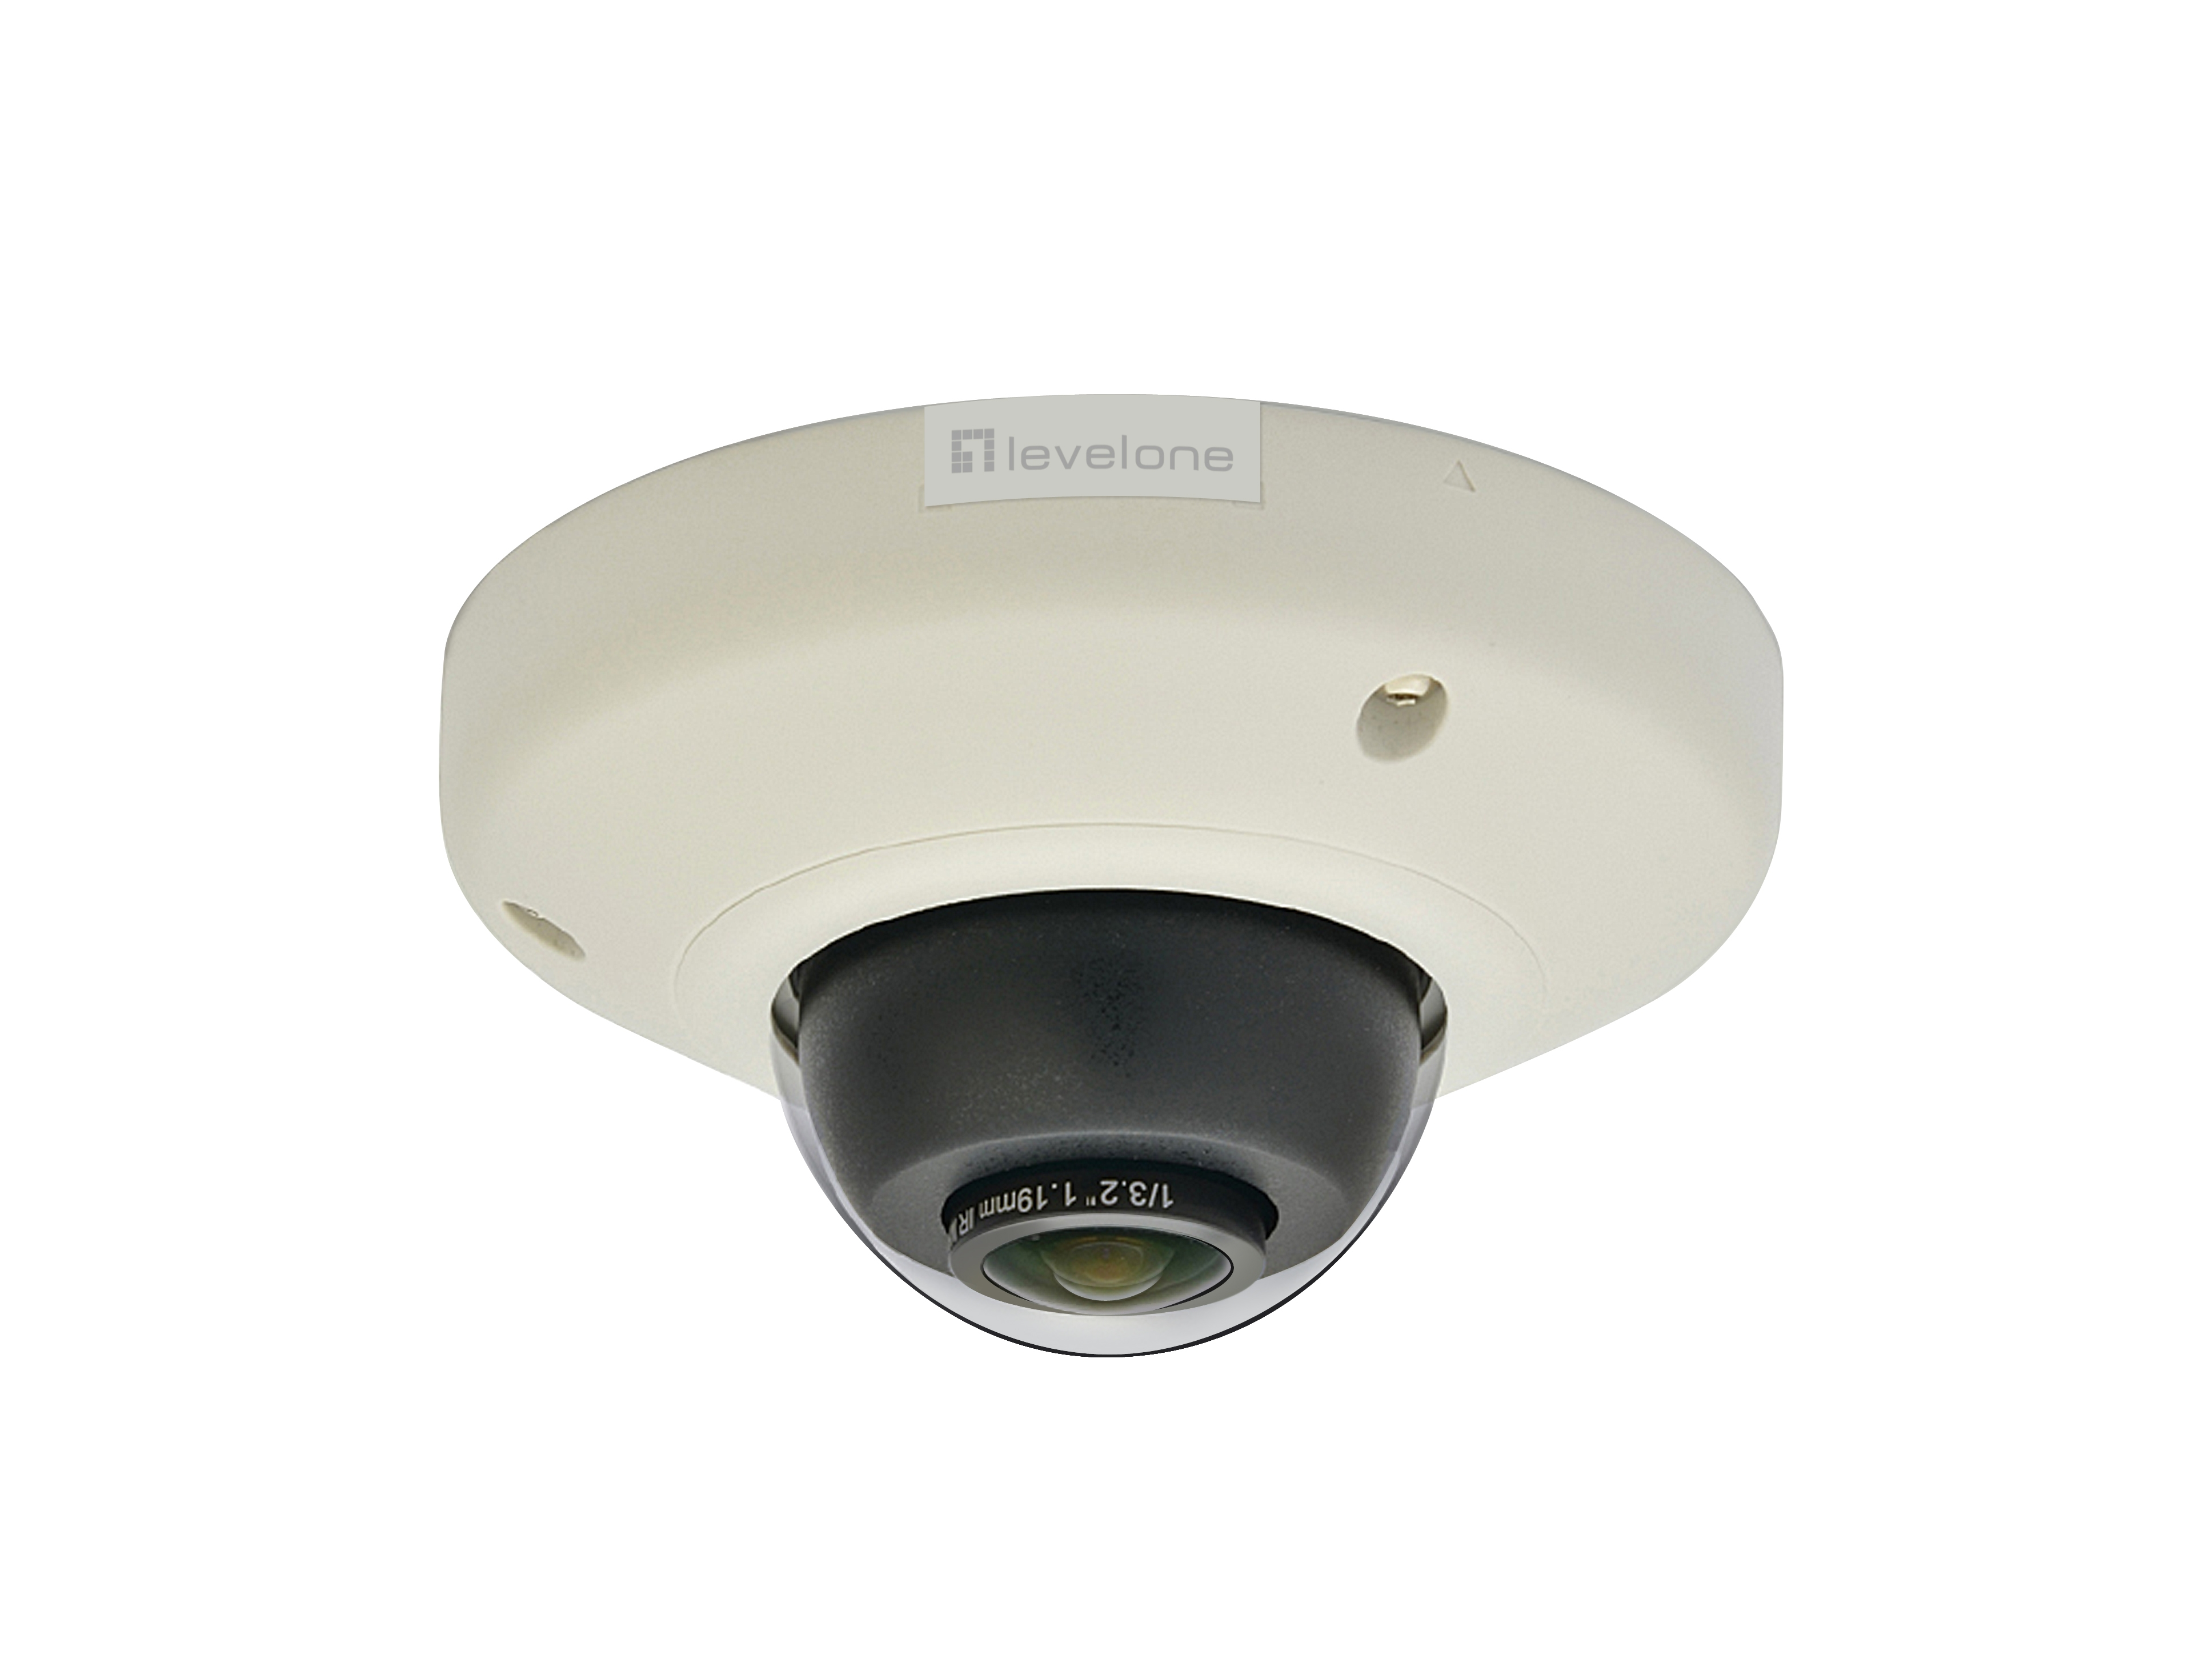 LevelOne Panoramic Dome Network Camera - 5-Megapixel - Outdoor - PoE 802.3af - WDR - Vandalproof - Vibrationproof